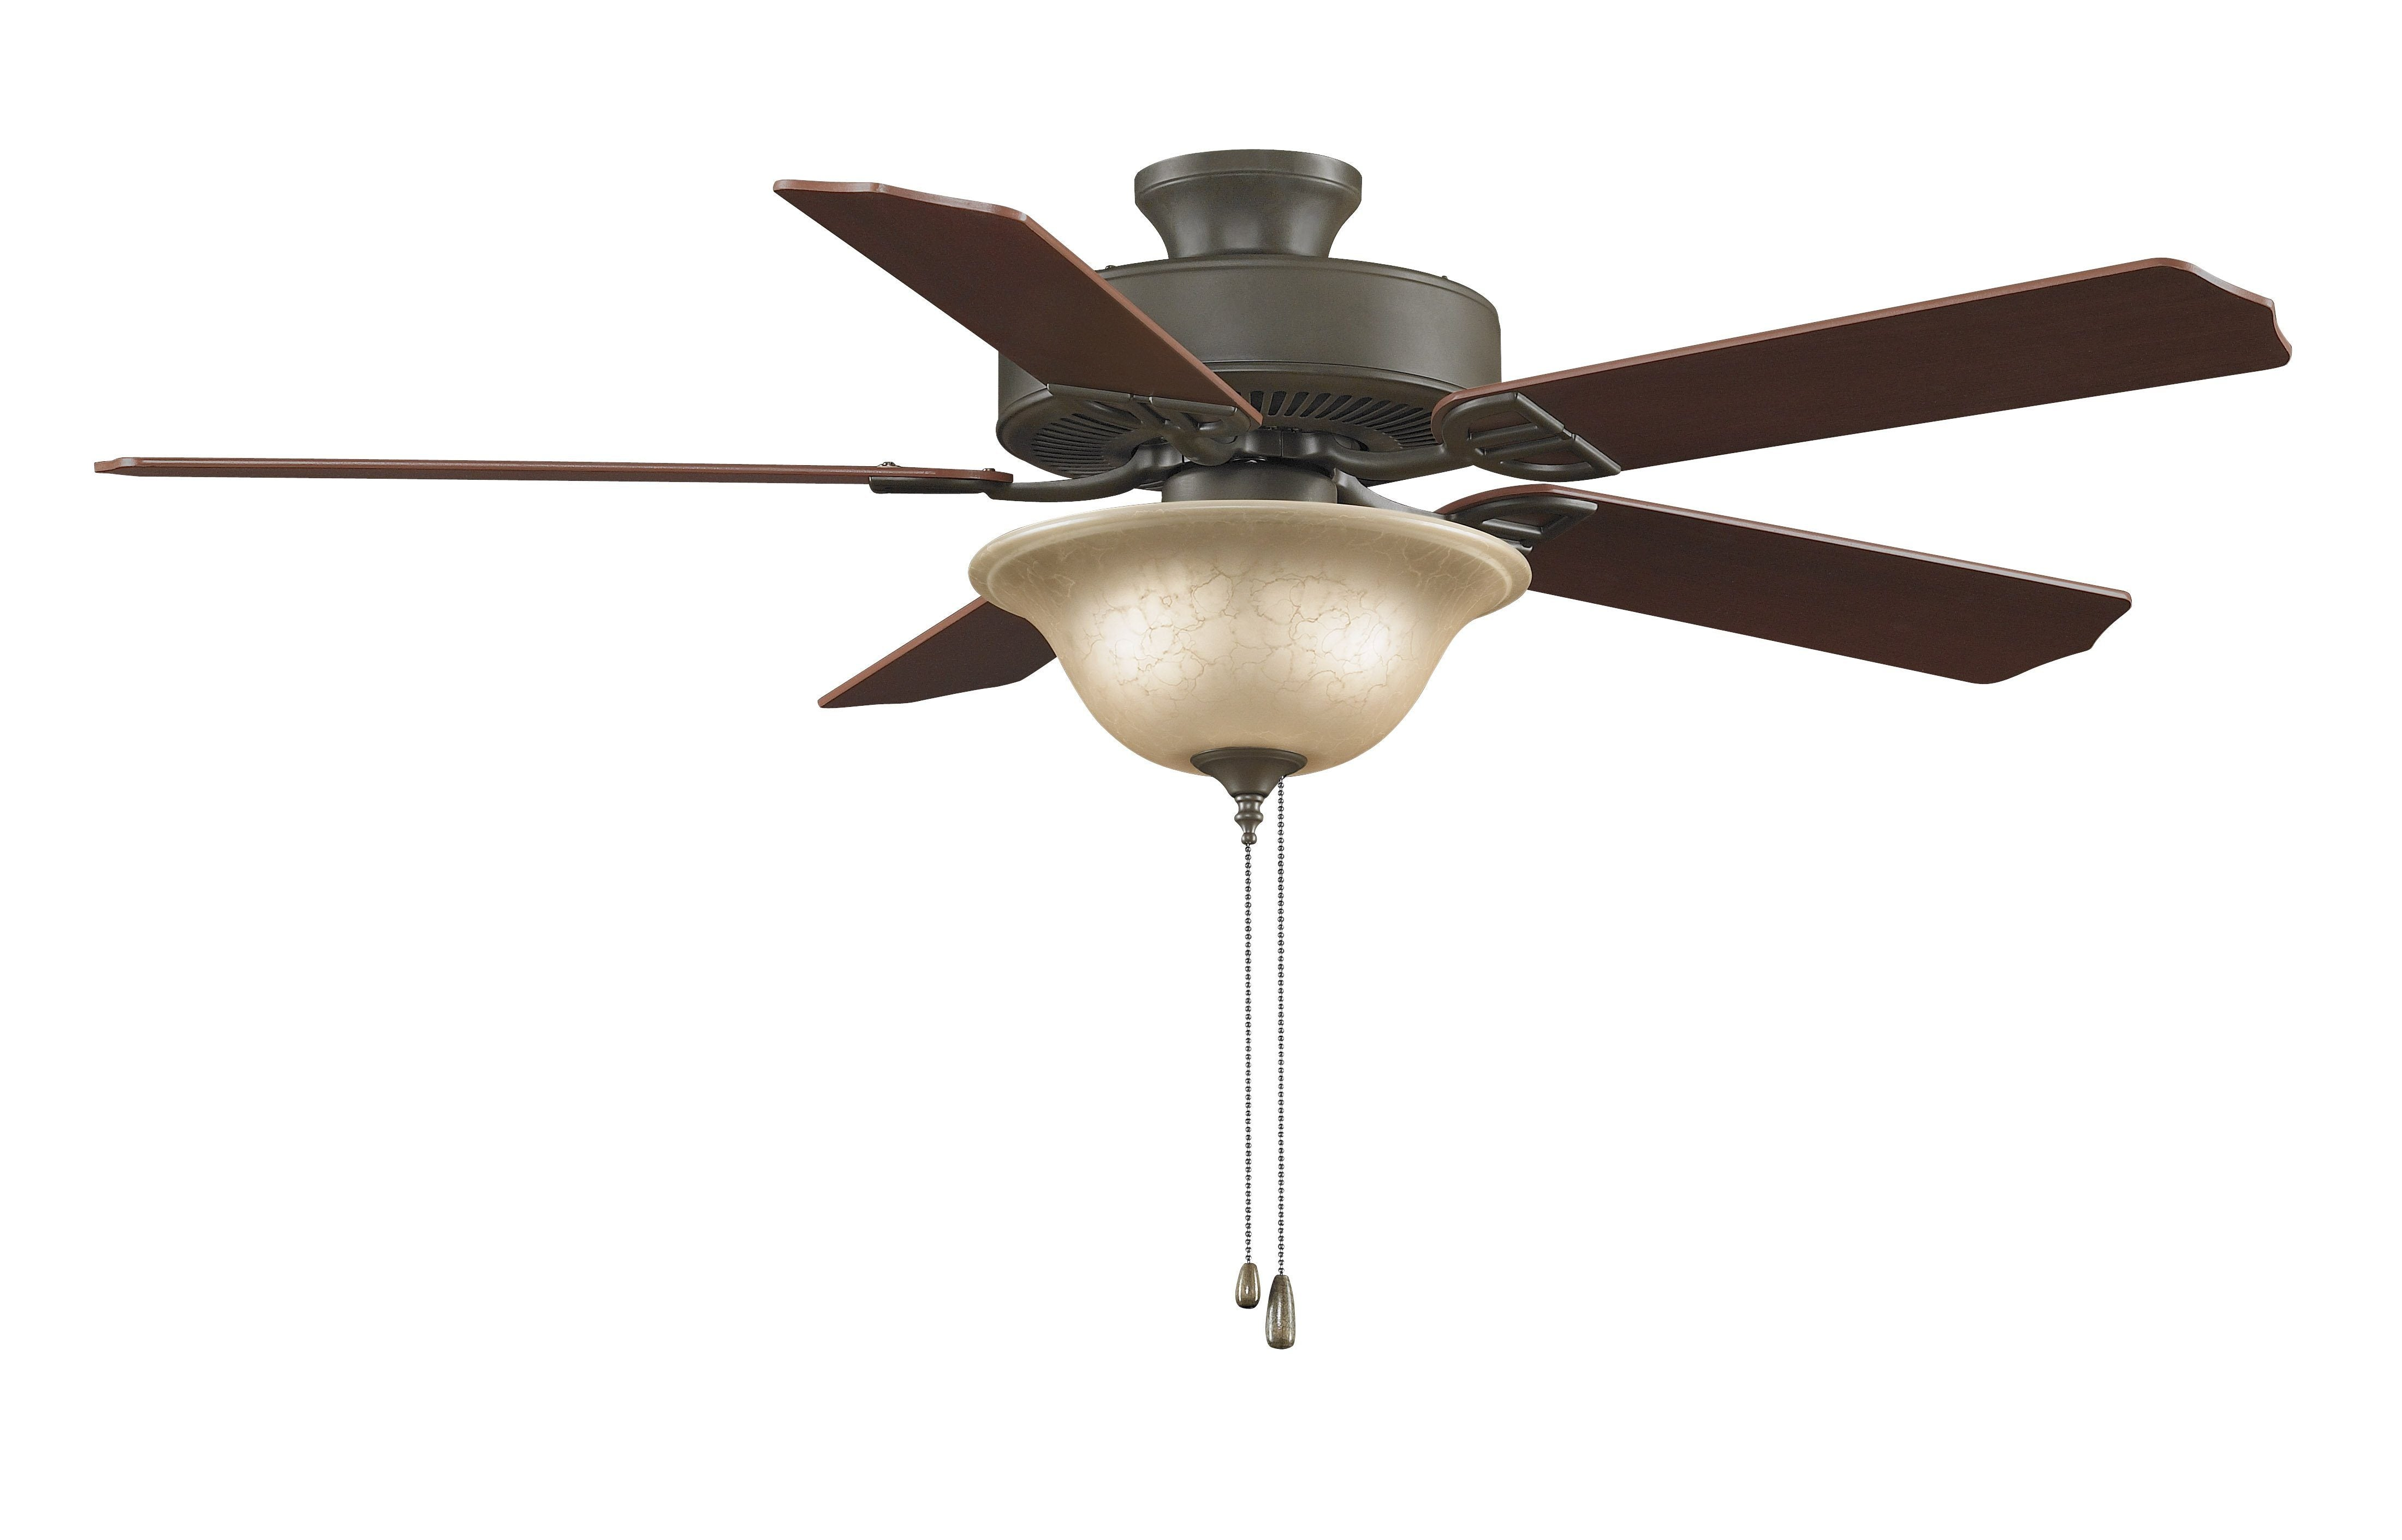 "Aire Decor 52"" Ceiling Fan - Bronze with Bowl Light Kit"